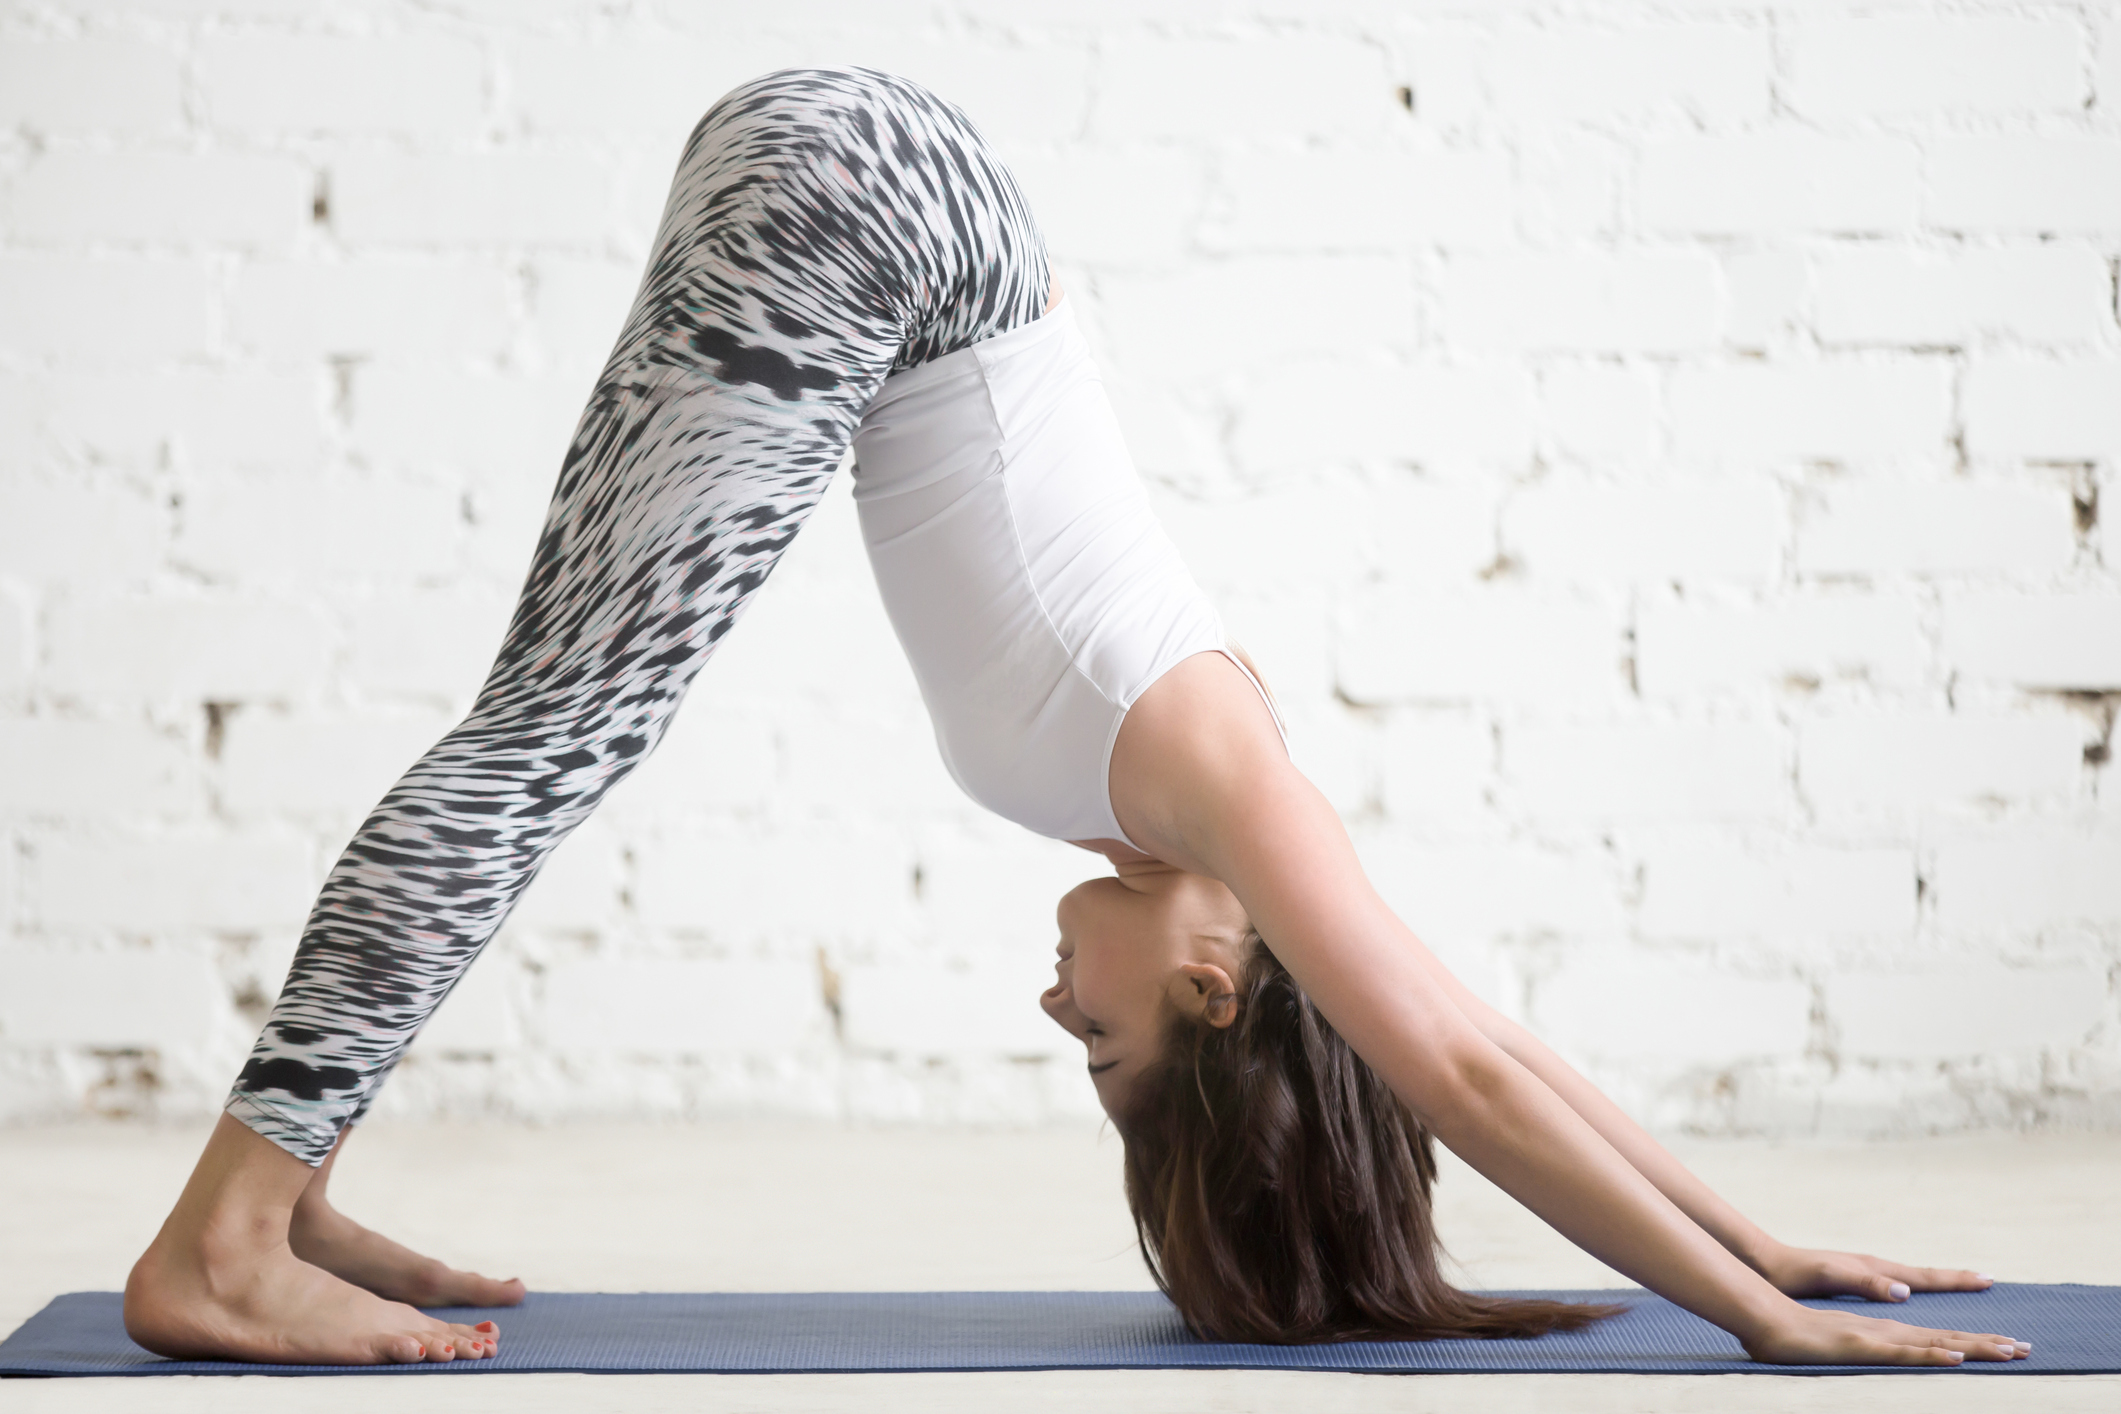 Young woman in Downward facing dog yoga position (Thinkstock/PA)